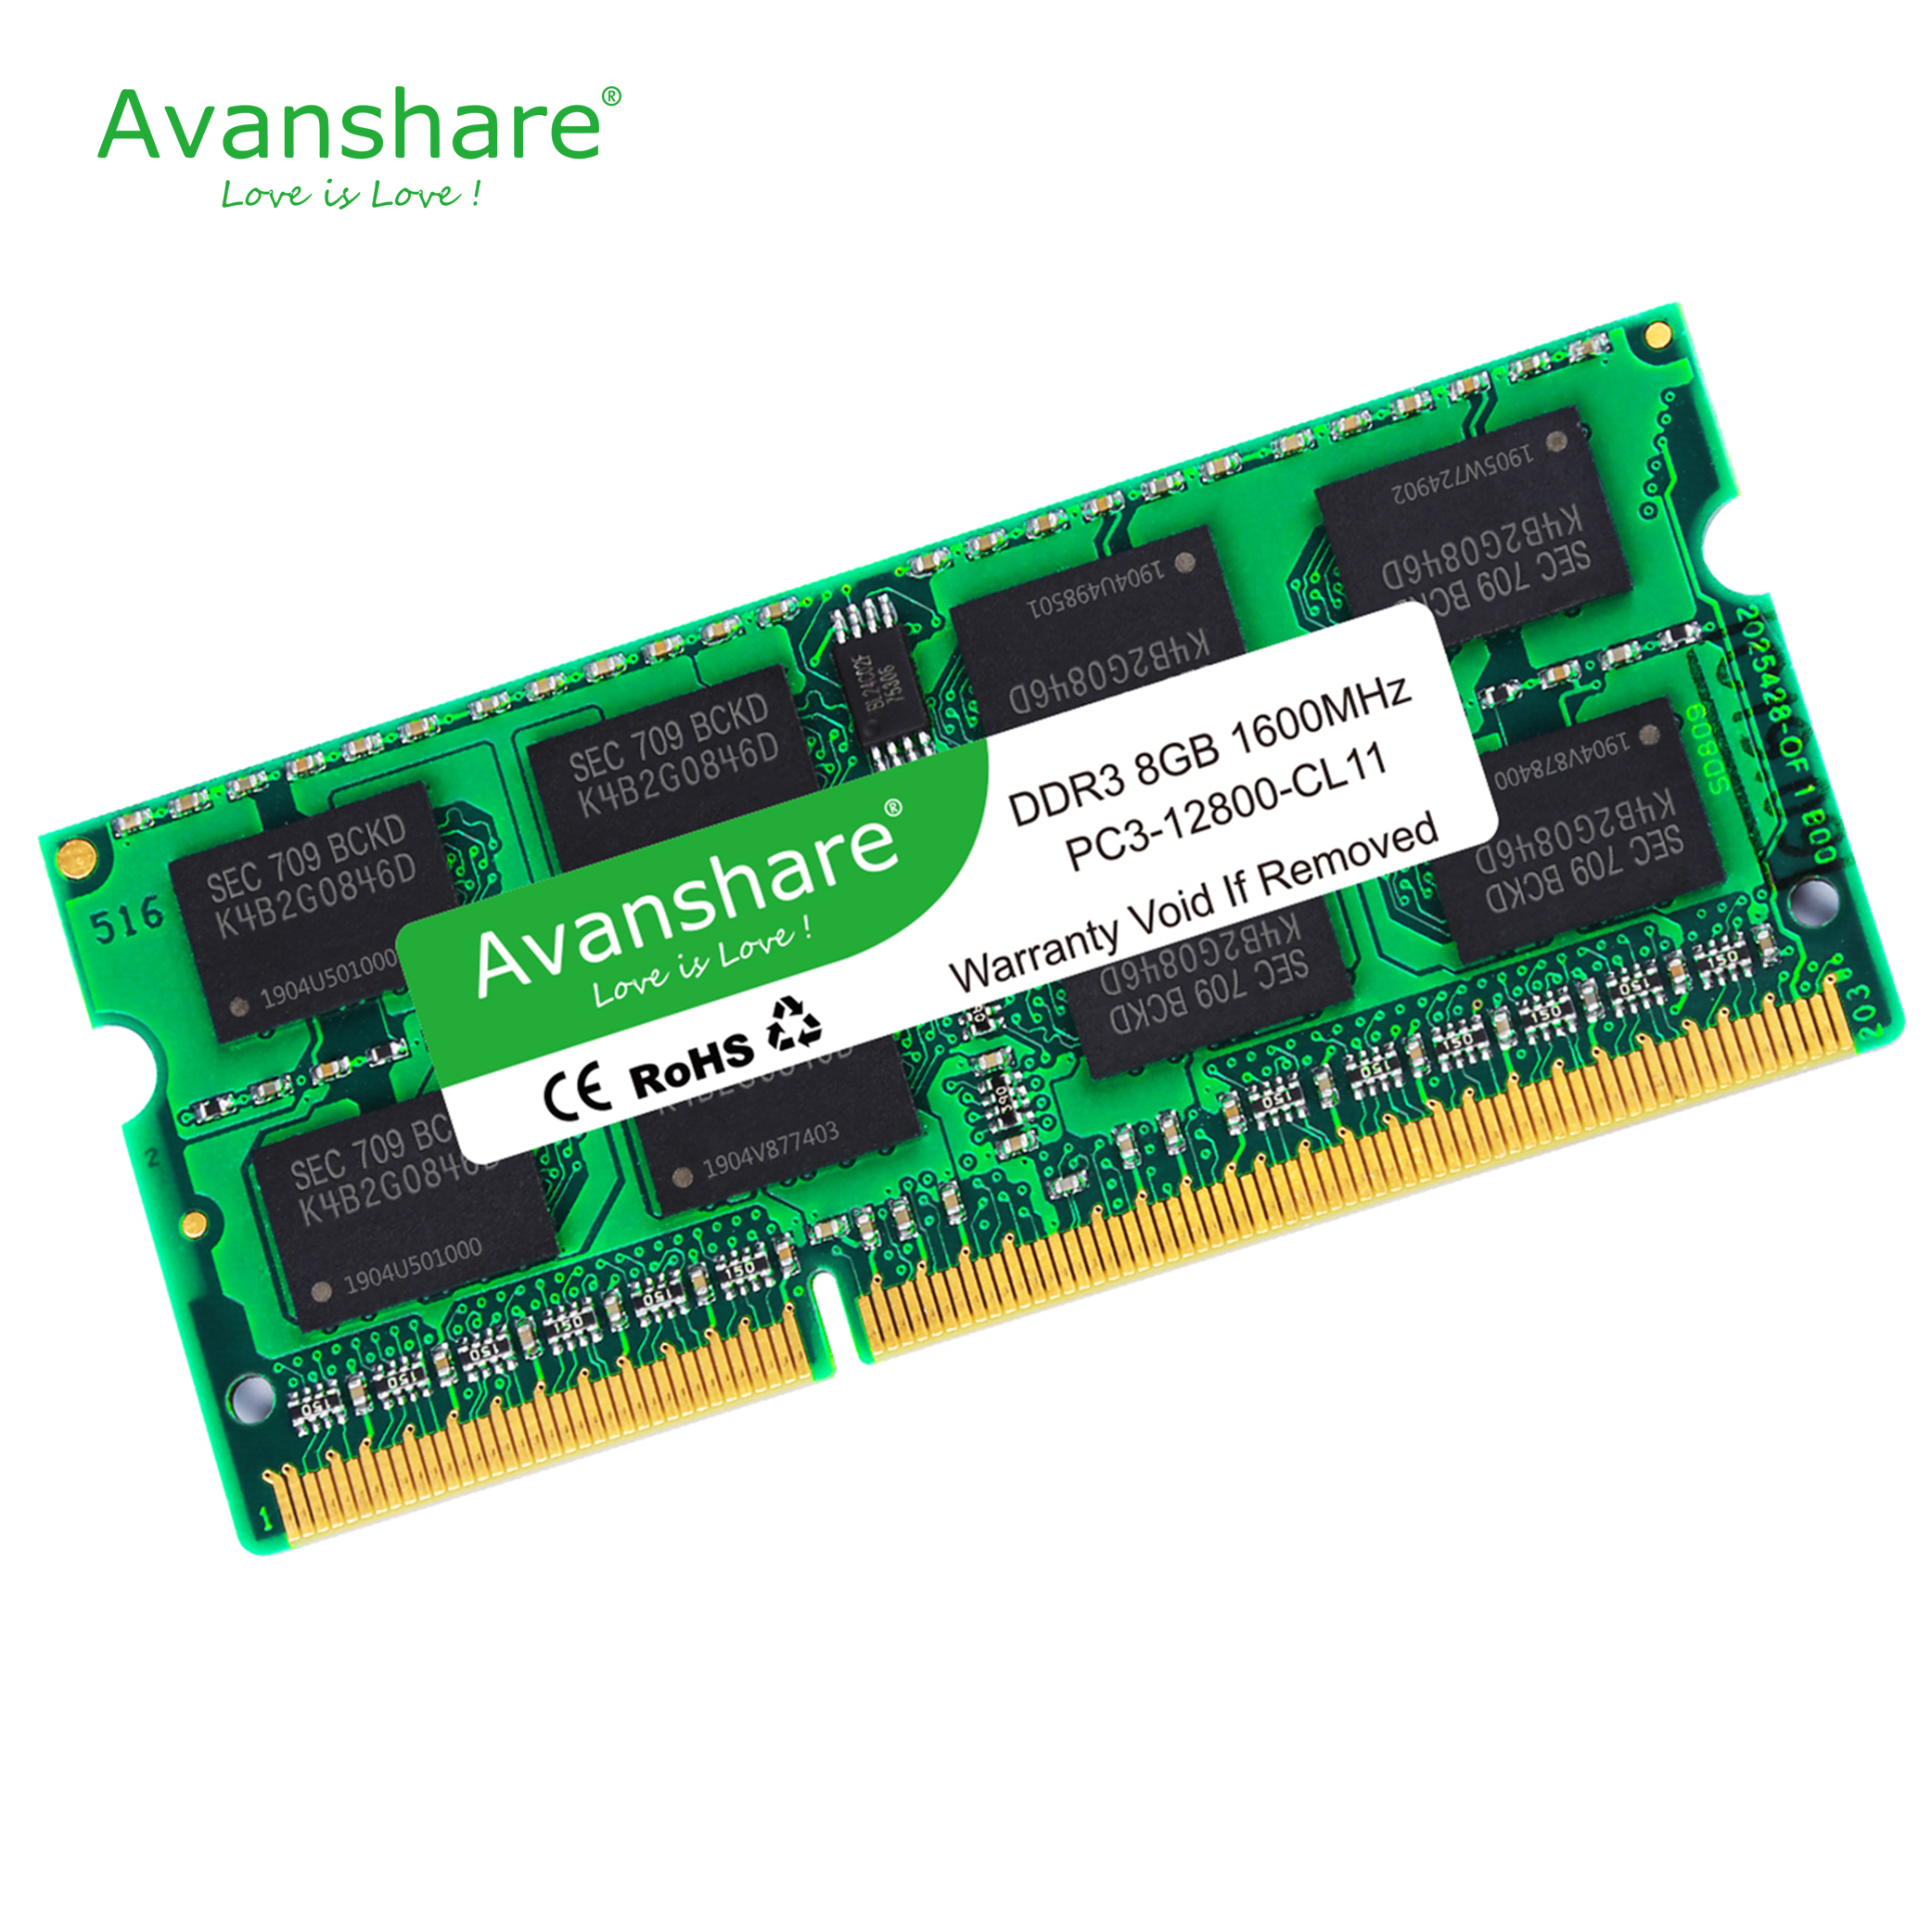 Avanshare memory <font><b>ddr3</b></font> 8gb for laptop 1600MHz <font><b>sodimm</b></font> macbook ram ddr3l <font><b>1600</b></font> compatible <font><b>ddr3</b></font> laptop <font><b>4gb</b></font> 1333MHz sdram 1066 mhz image